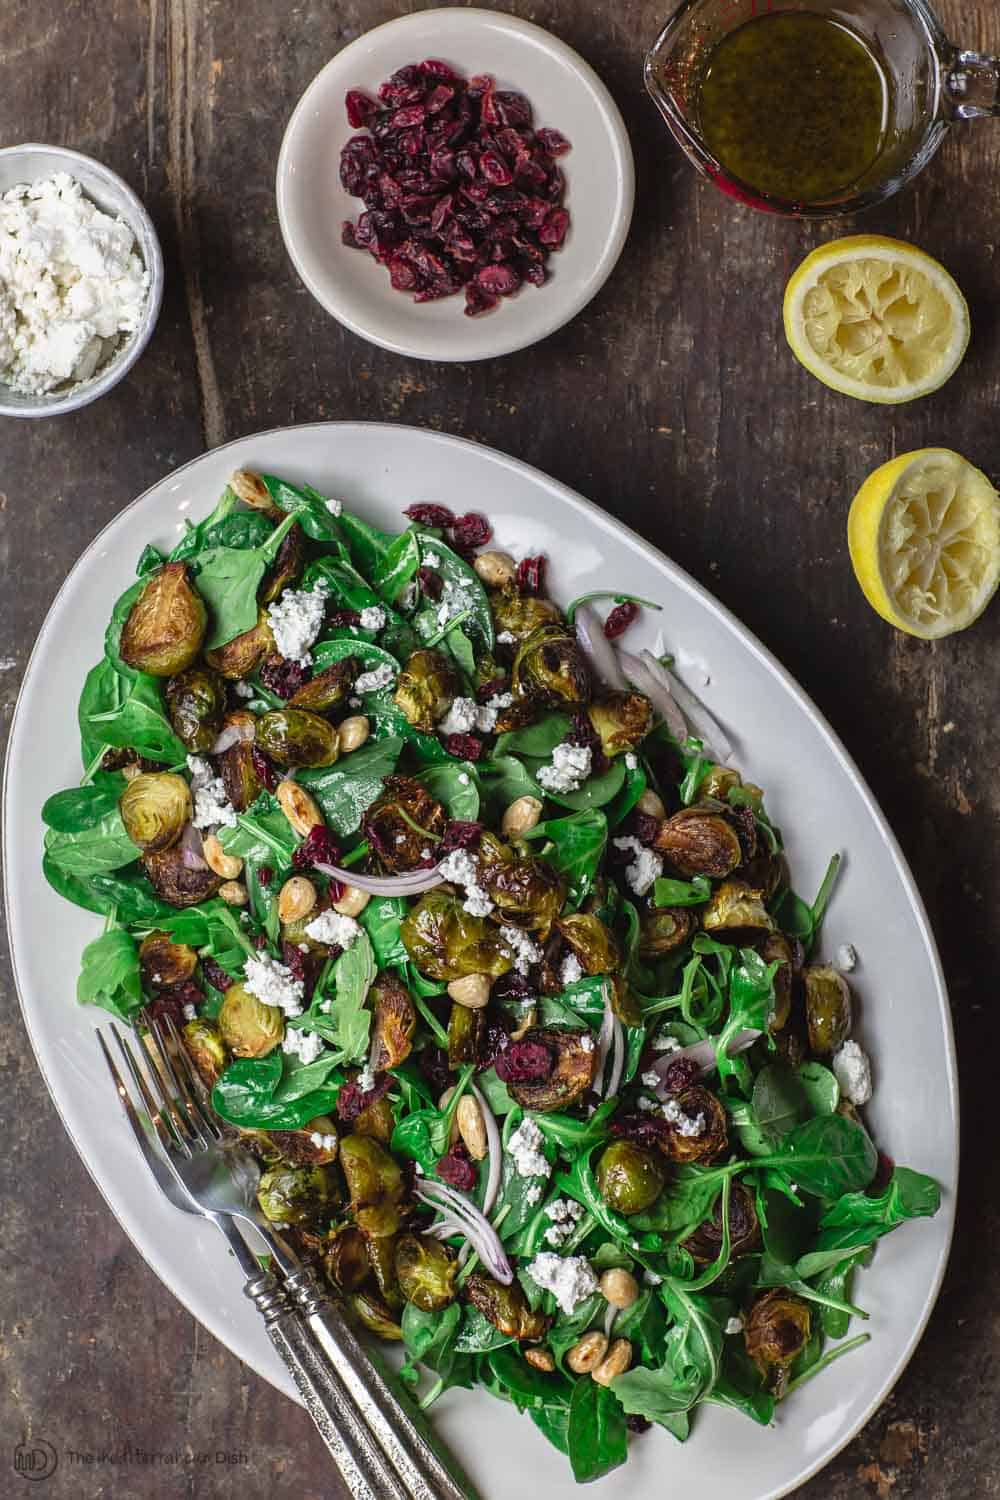 Mediterranean roasted brussels sprouts salad with spinach, arugula, cranberries, almonds and feta. Presented on serving platter with more cranberries and feta cheese on the side.